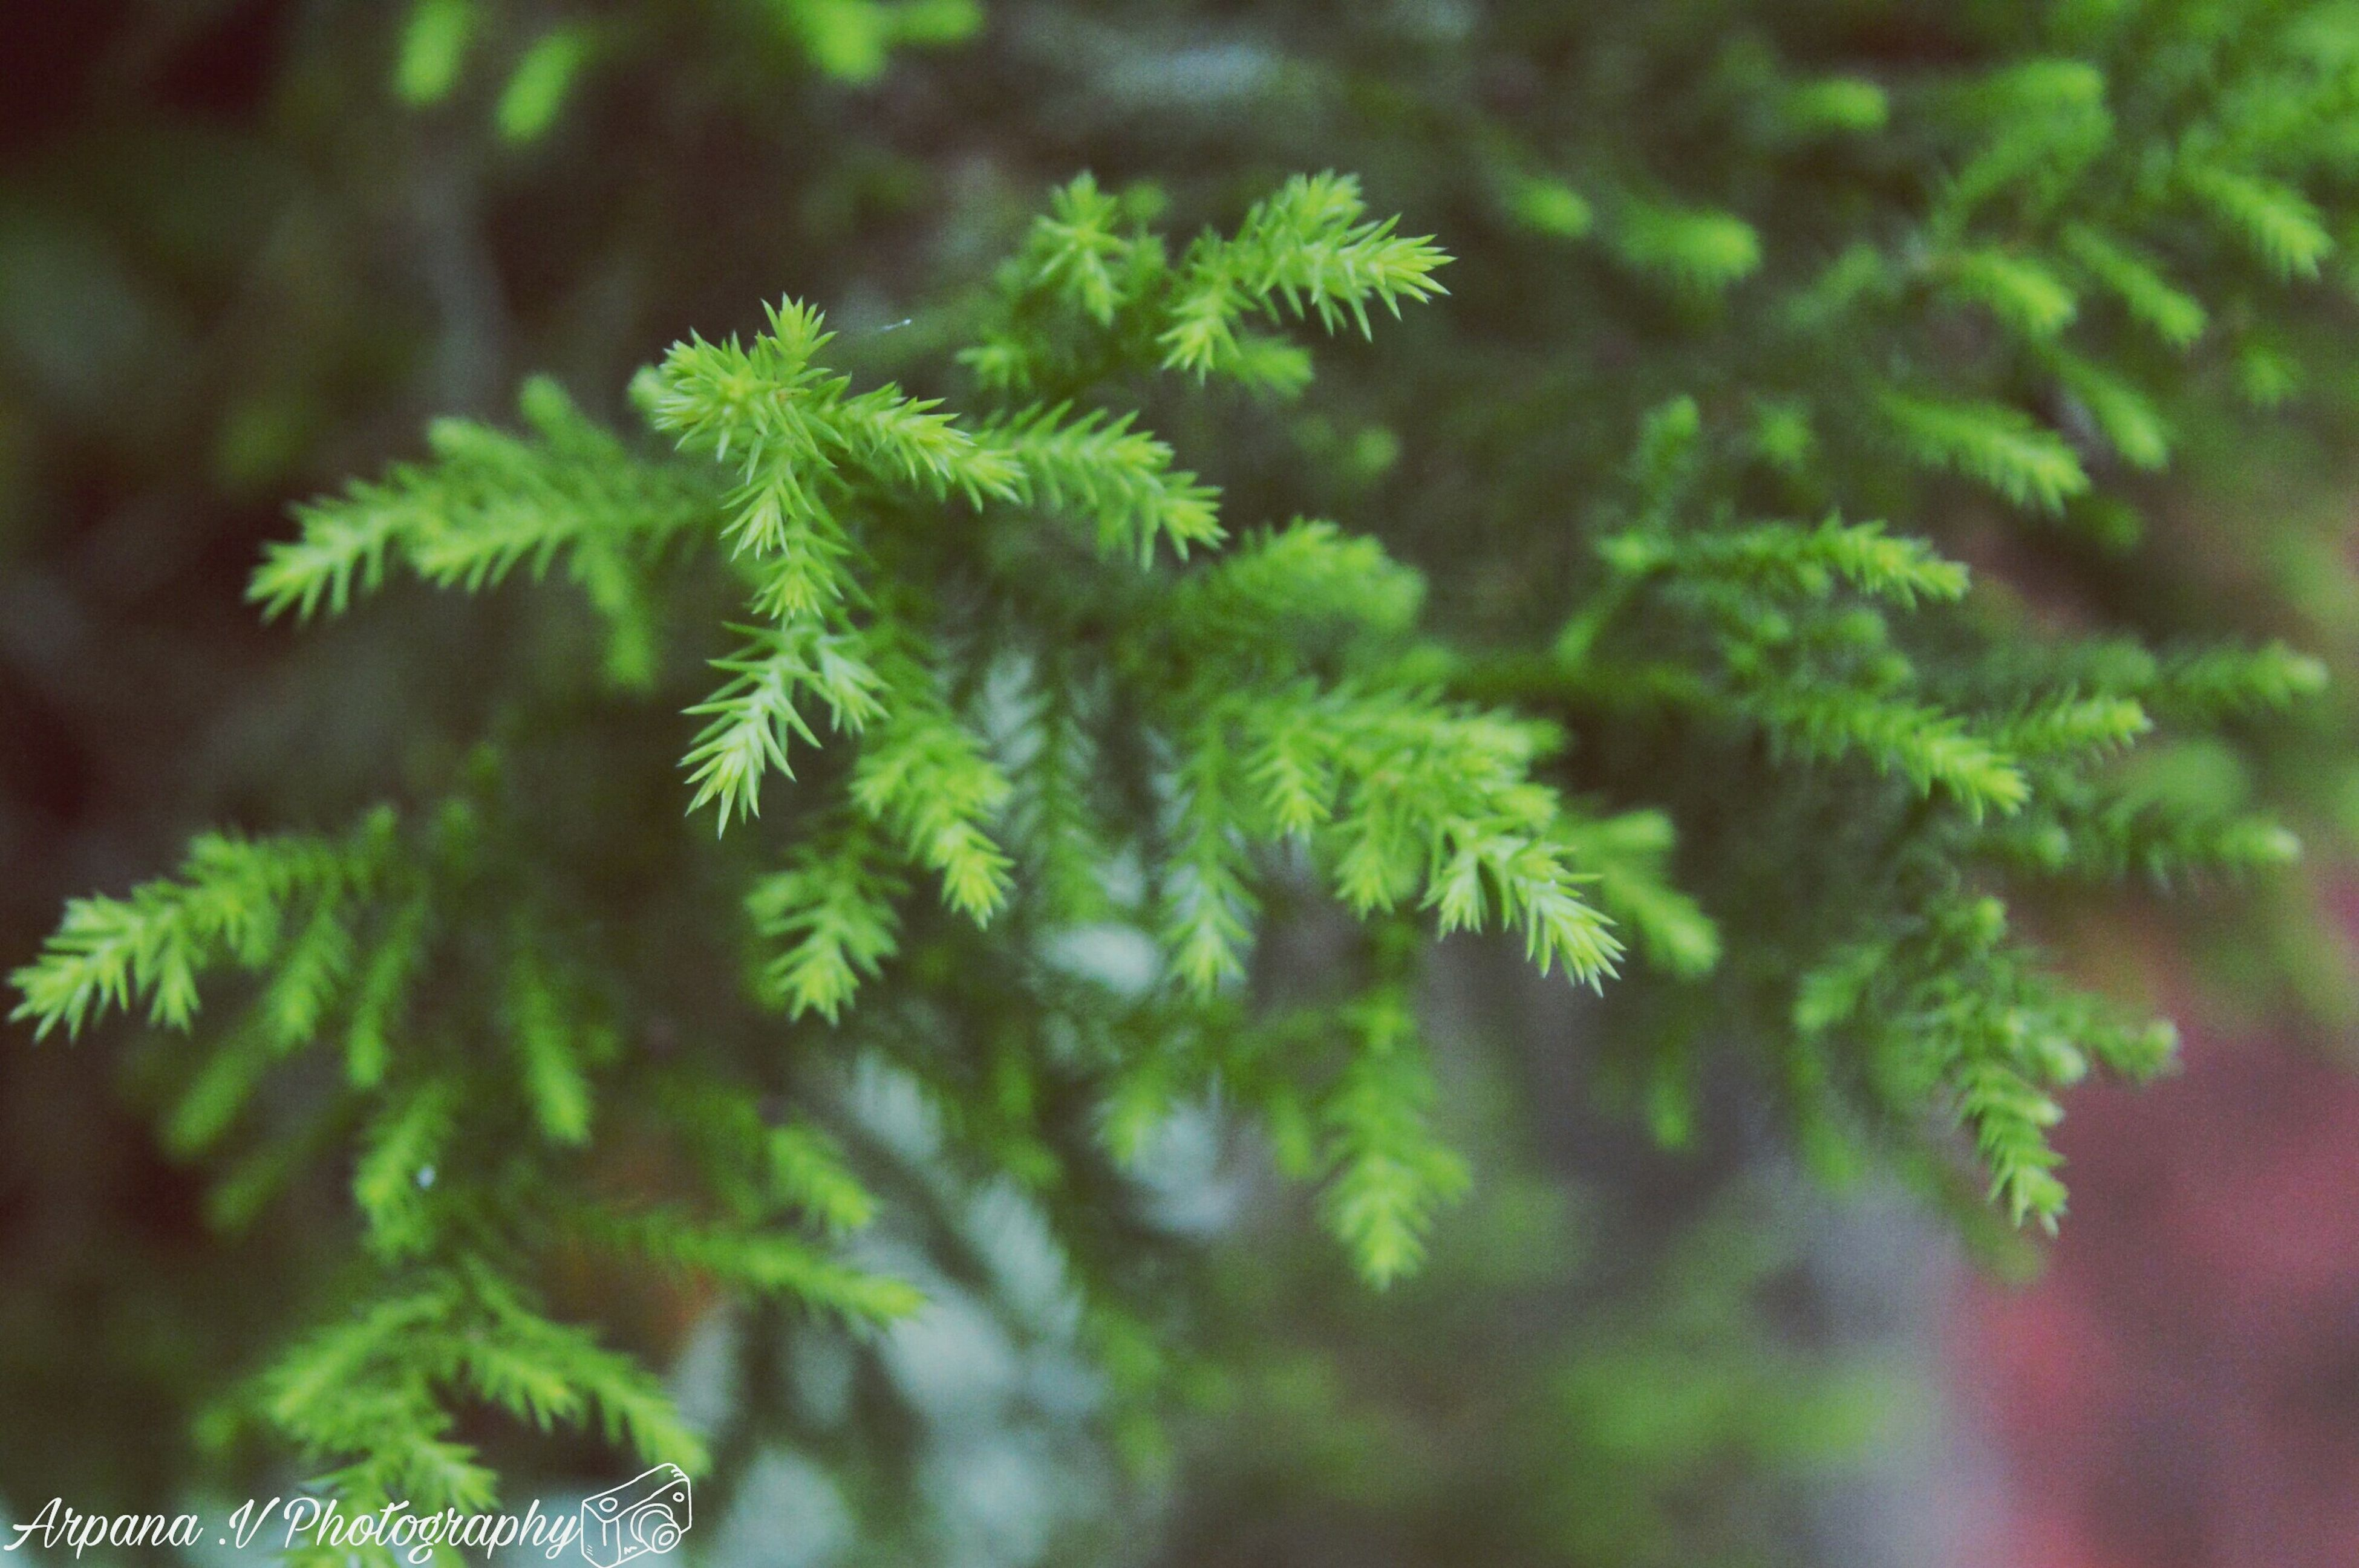 green color, nature, tree, branch, beauty in nature, growth, close-up, winter, fir tree, lush foliage, plant, leaf, needle - plant part, no people, spruce tree, coniferous tree, forest, outdoors, biology, day, cannabis plant